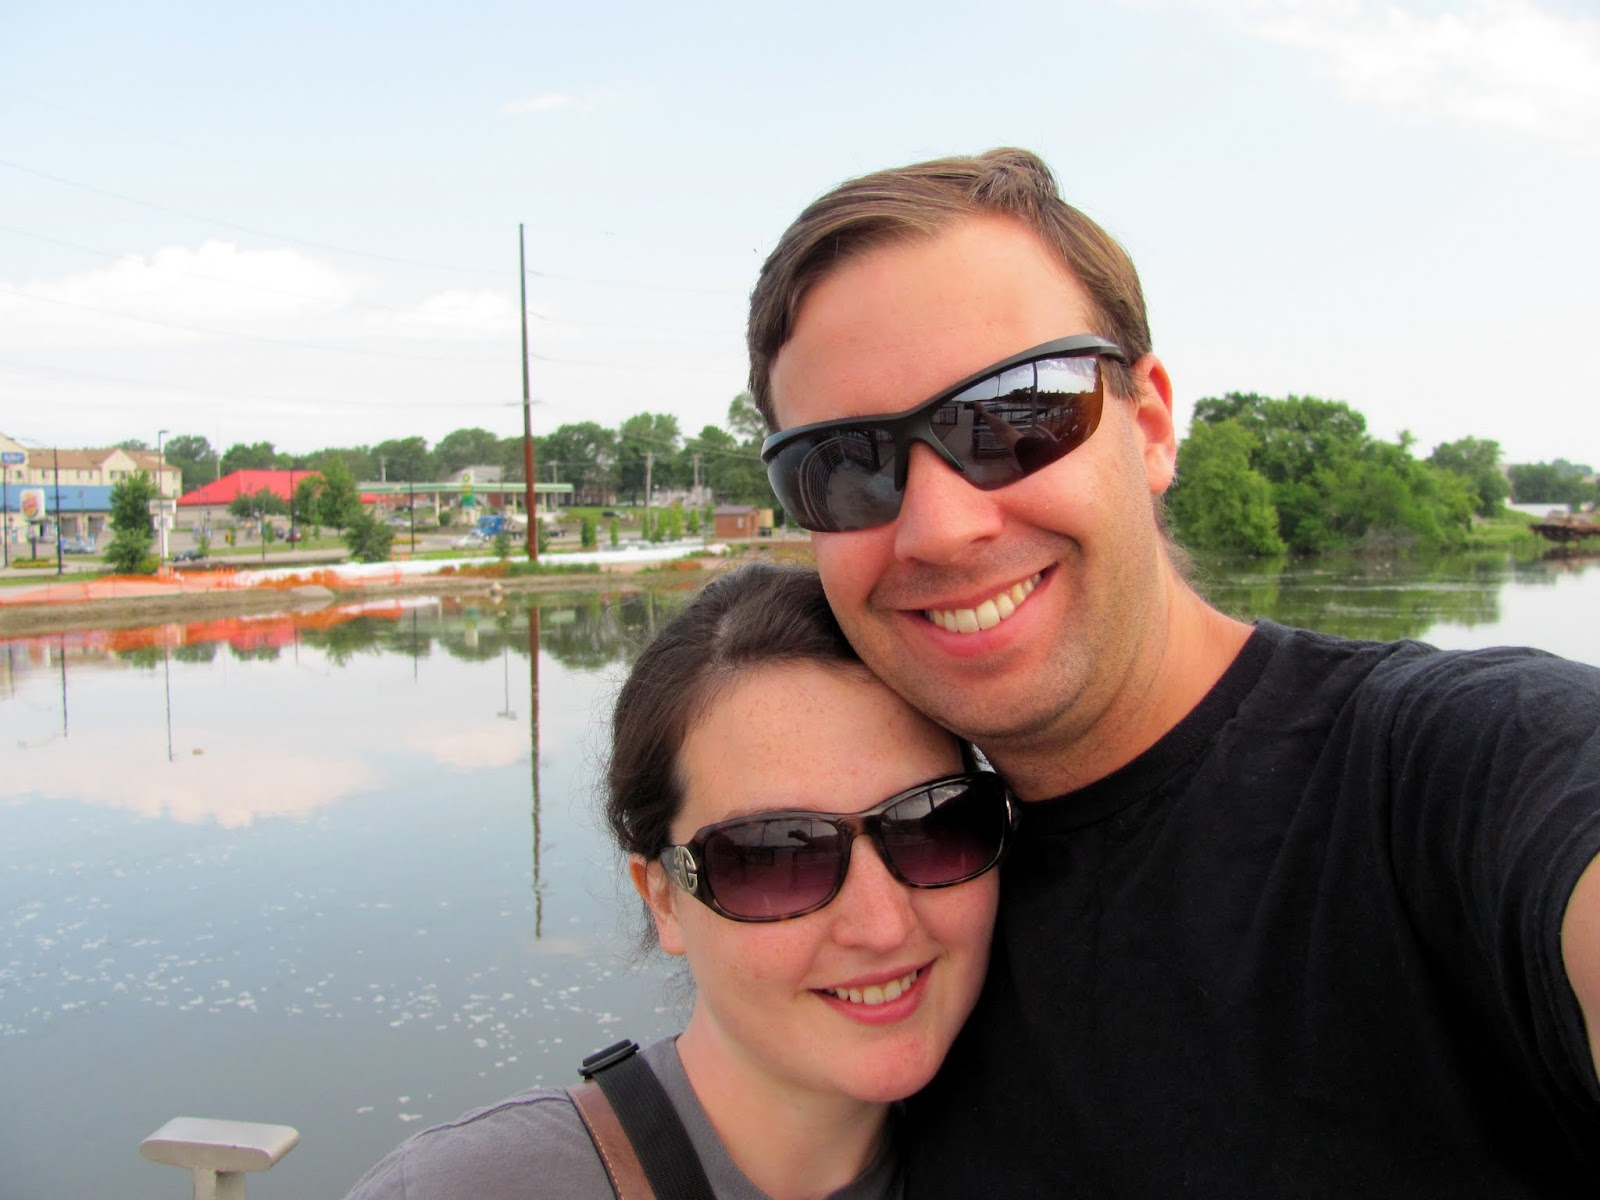 Cory and Sara posing on the Iowa River Power bridge after the 2013 American Road Trip